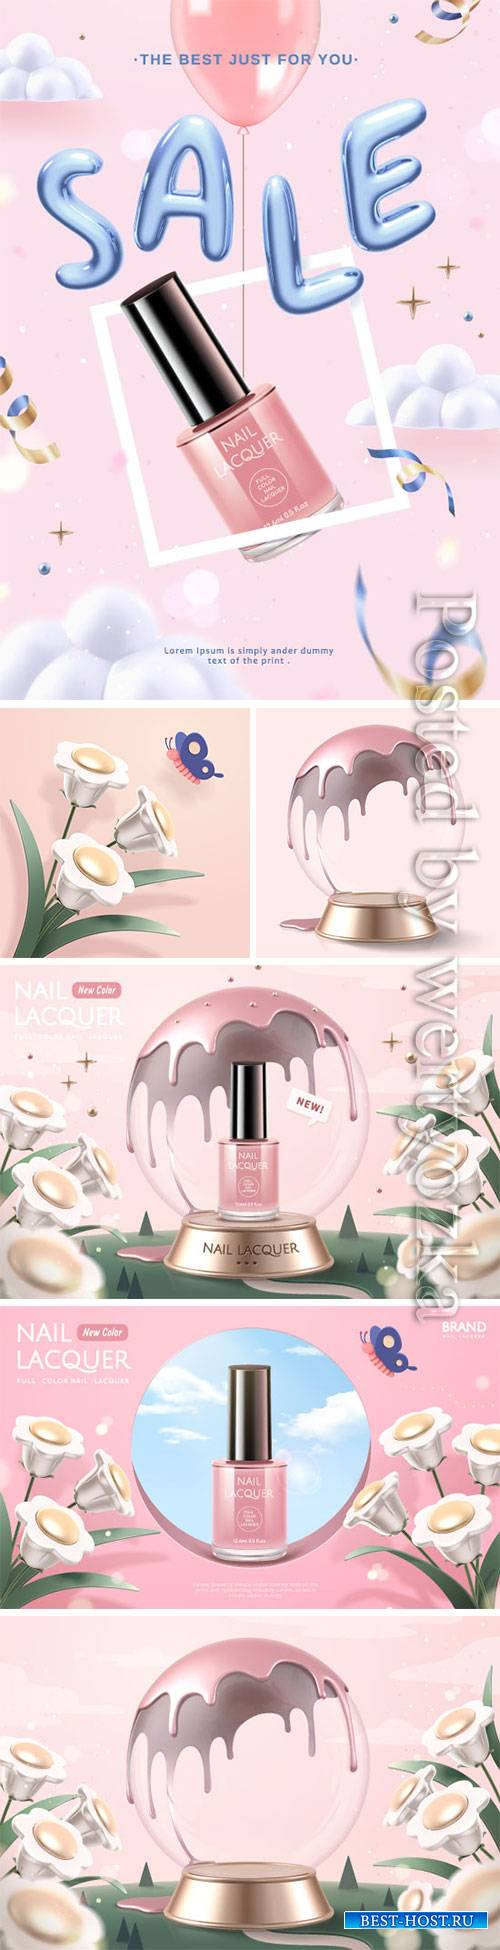 Cosmetics advertising vector posters, perfume, cream, nail polish # 4